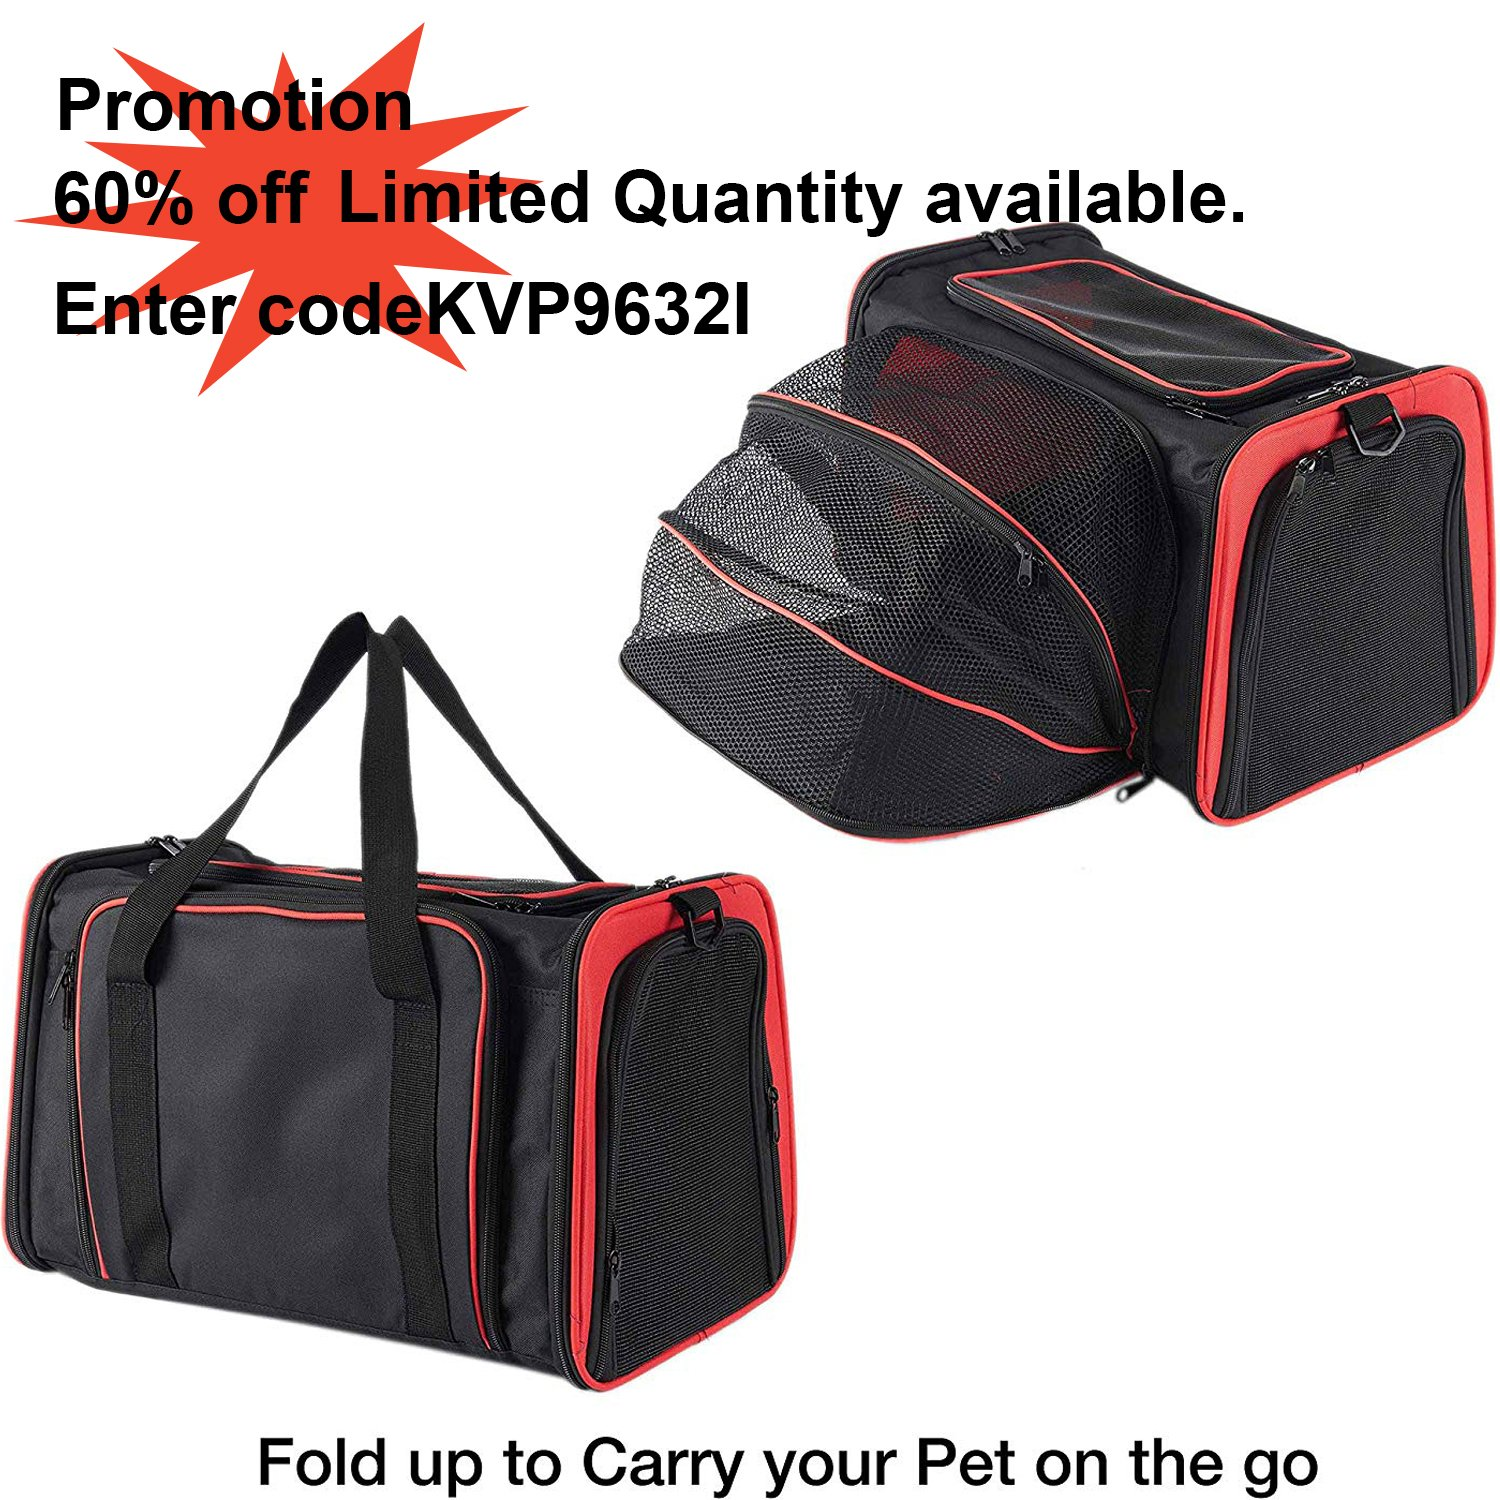 Pettom Expandable Foldable Pet Carrier Big Space Travel Handbag Soft-sided Bags for Dogs Cats and Other Animals(M, Orange)